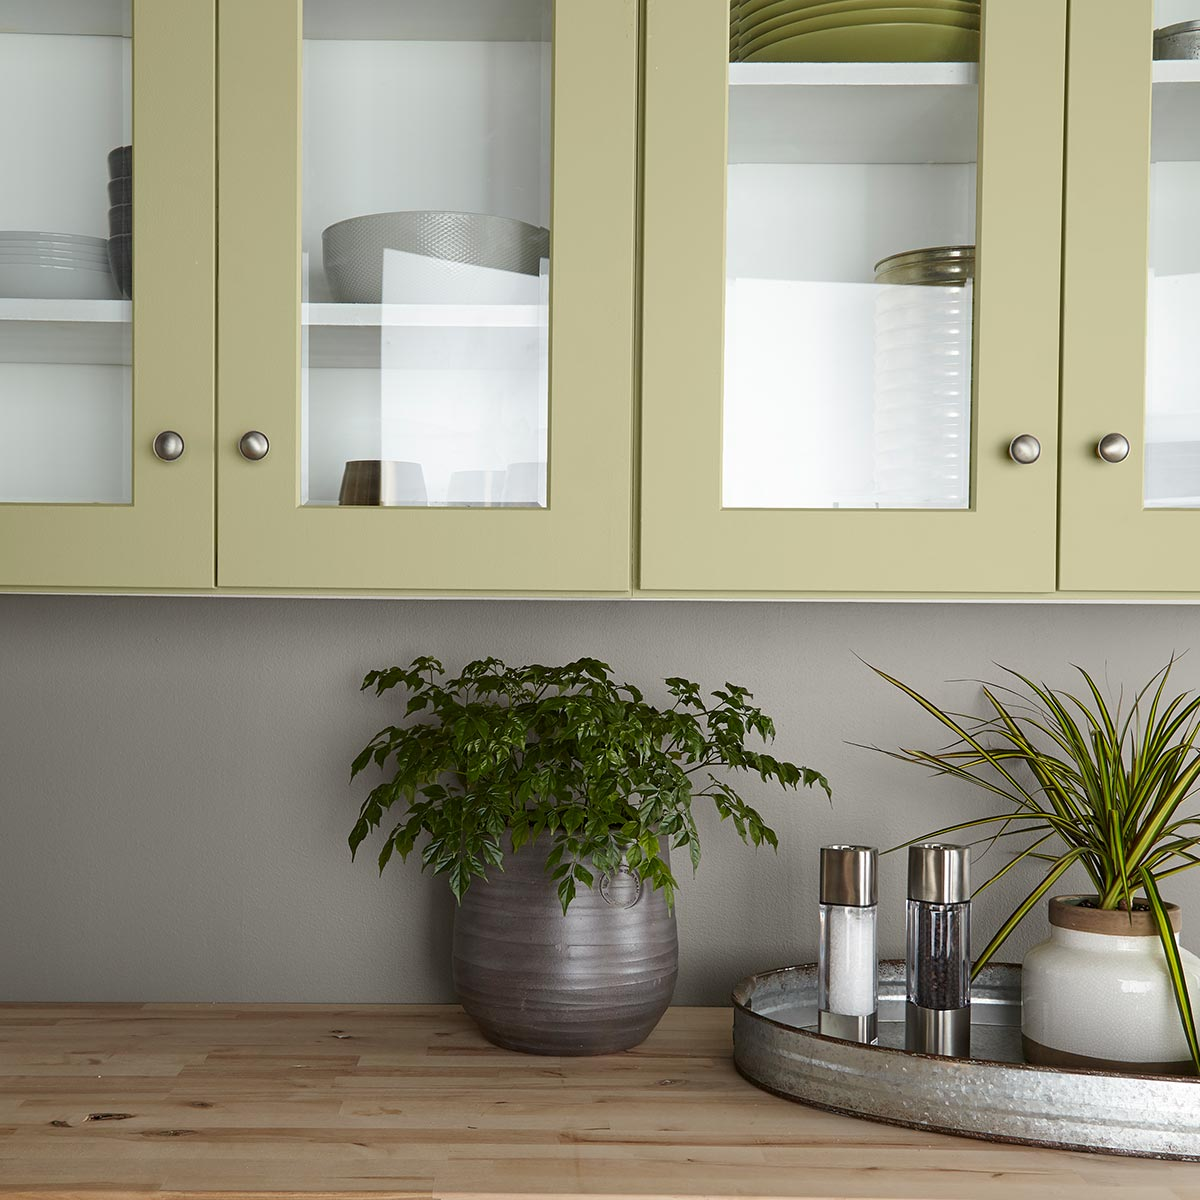 Behr 2020 COY Back to Nature, Kitchen